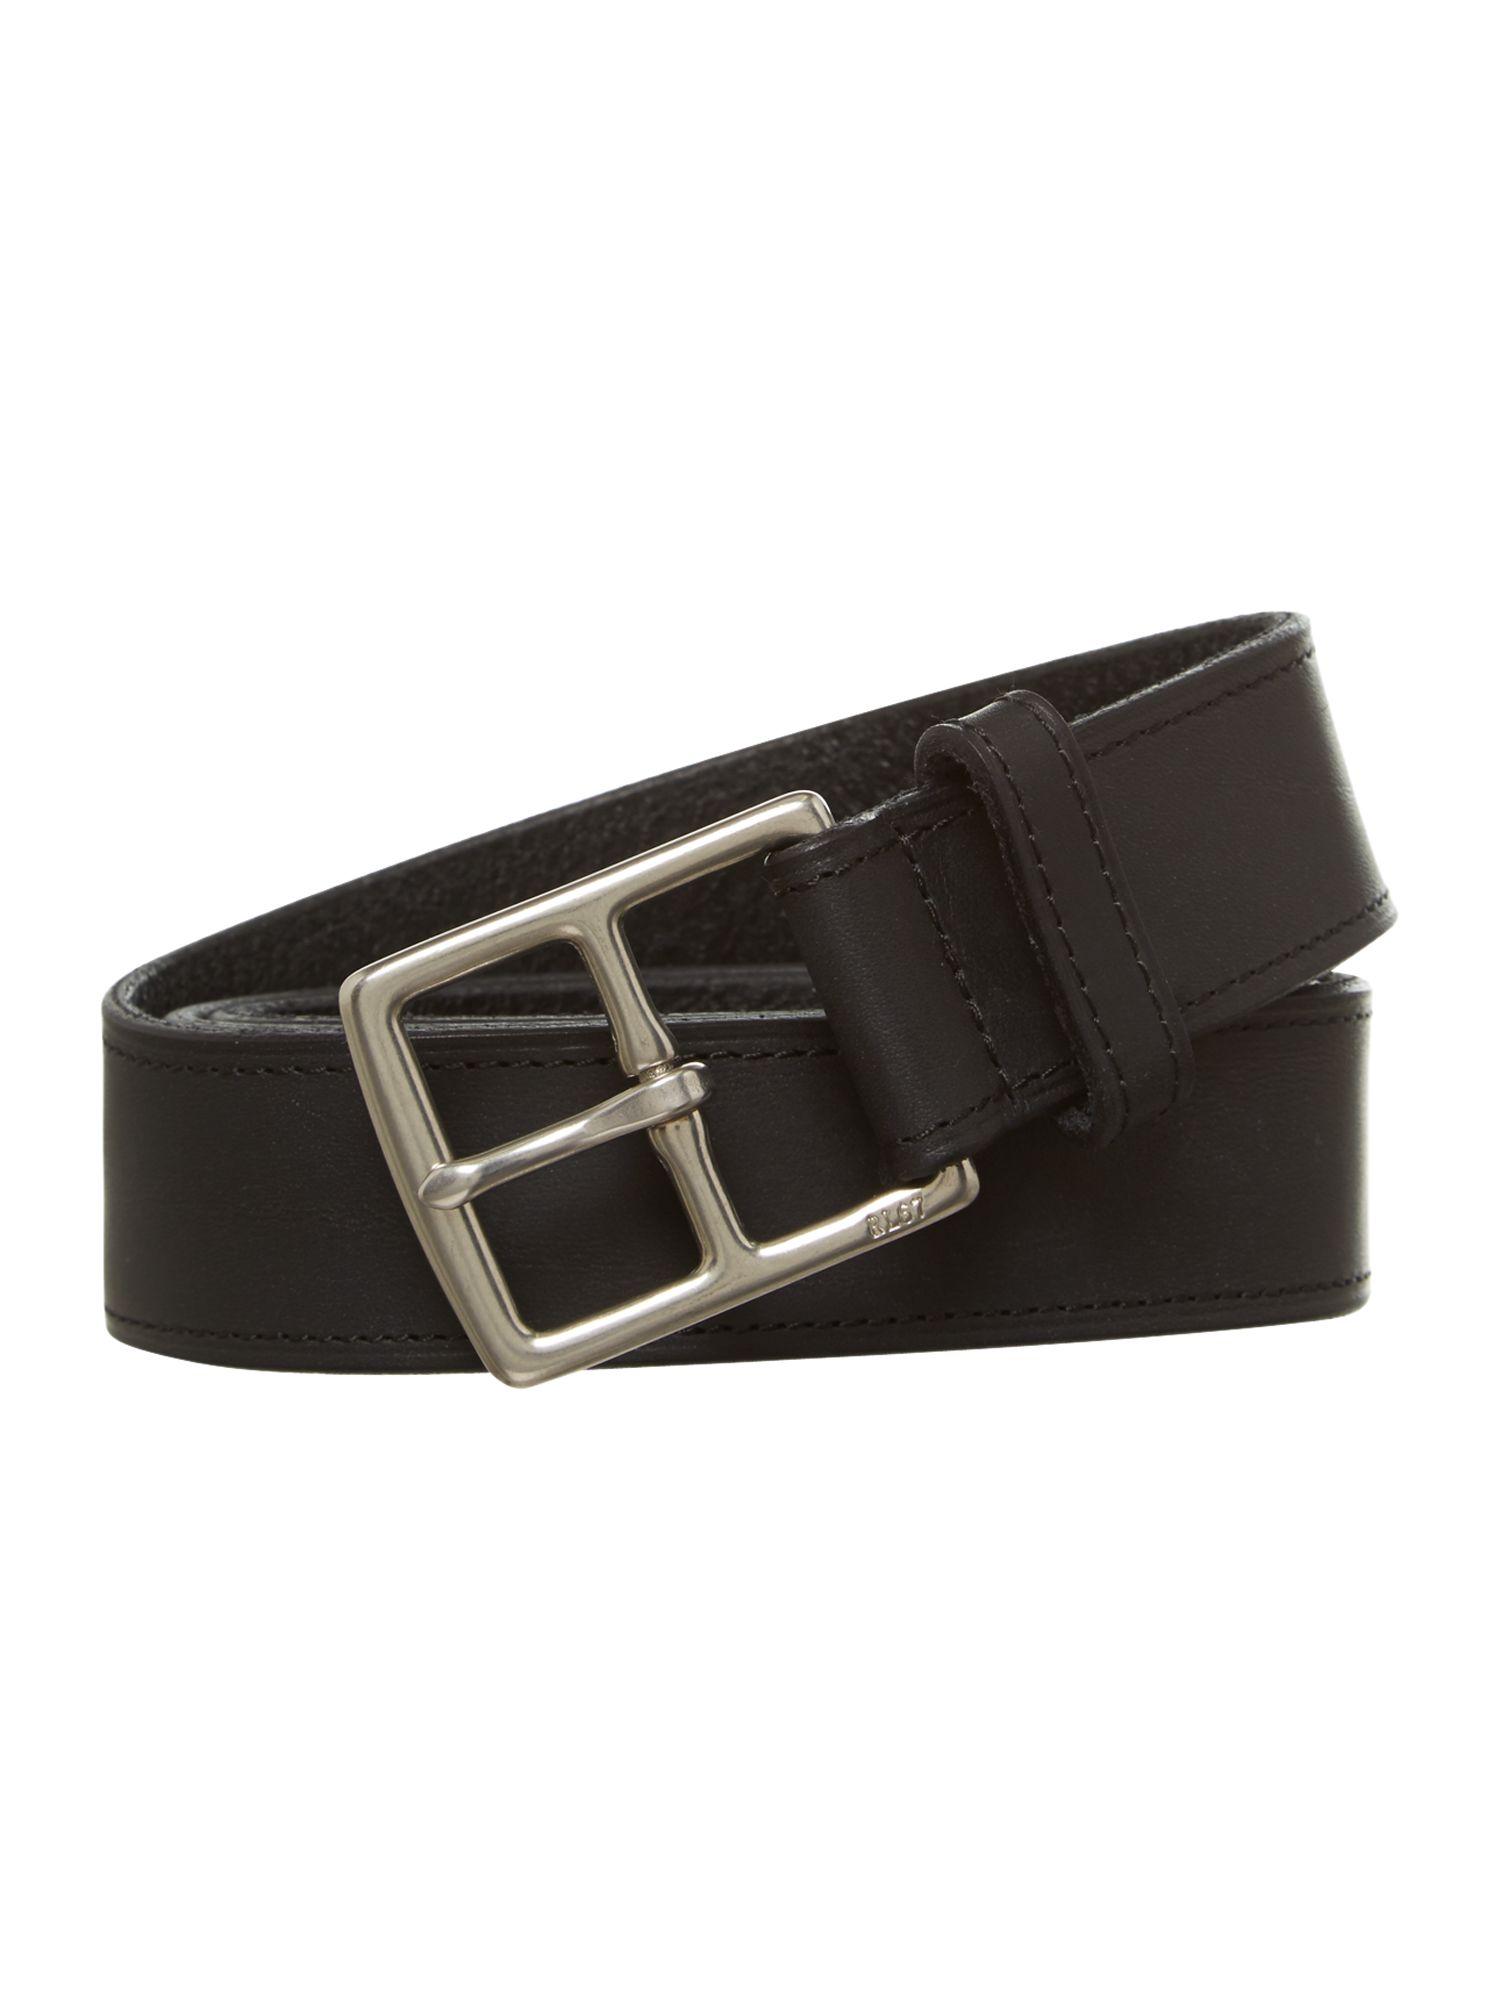 Heritage leather belt